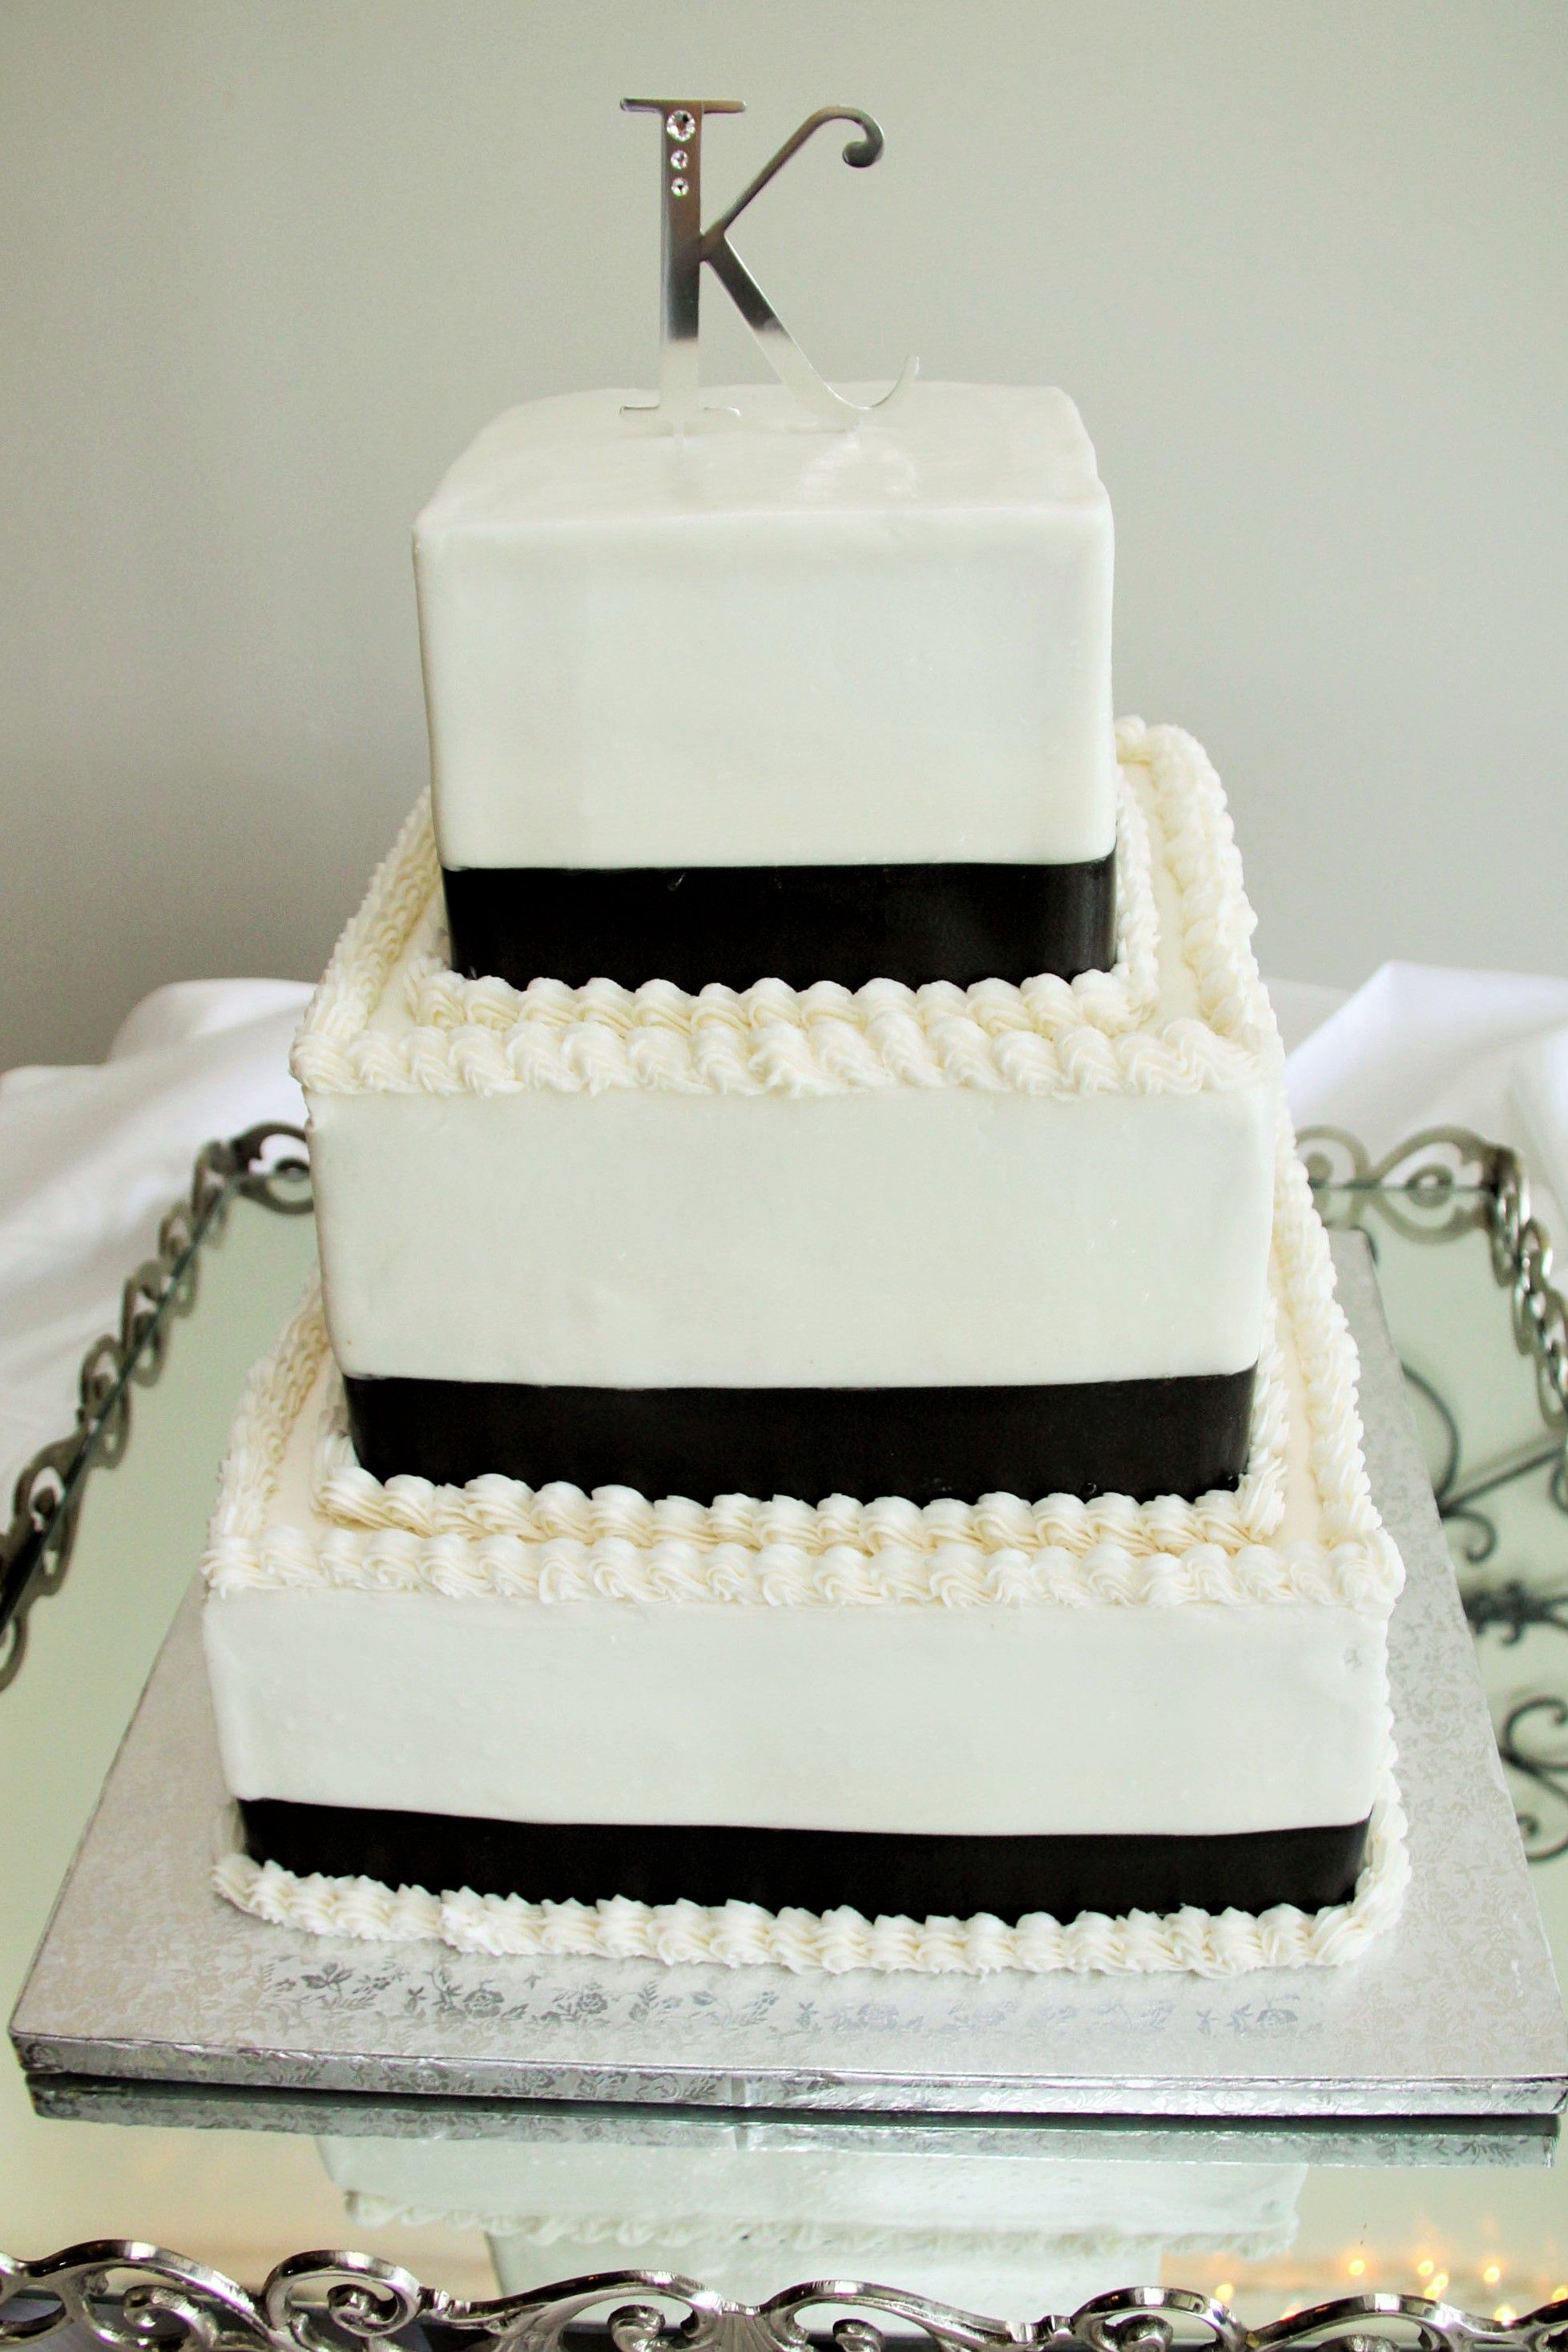 3 Tier Square Wedding Cake with Black Ribbon and Initial Cake Topper ...